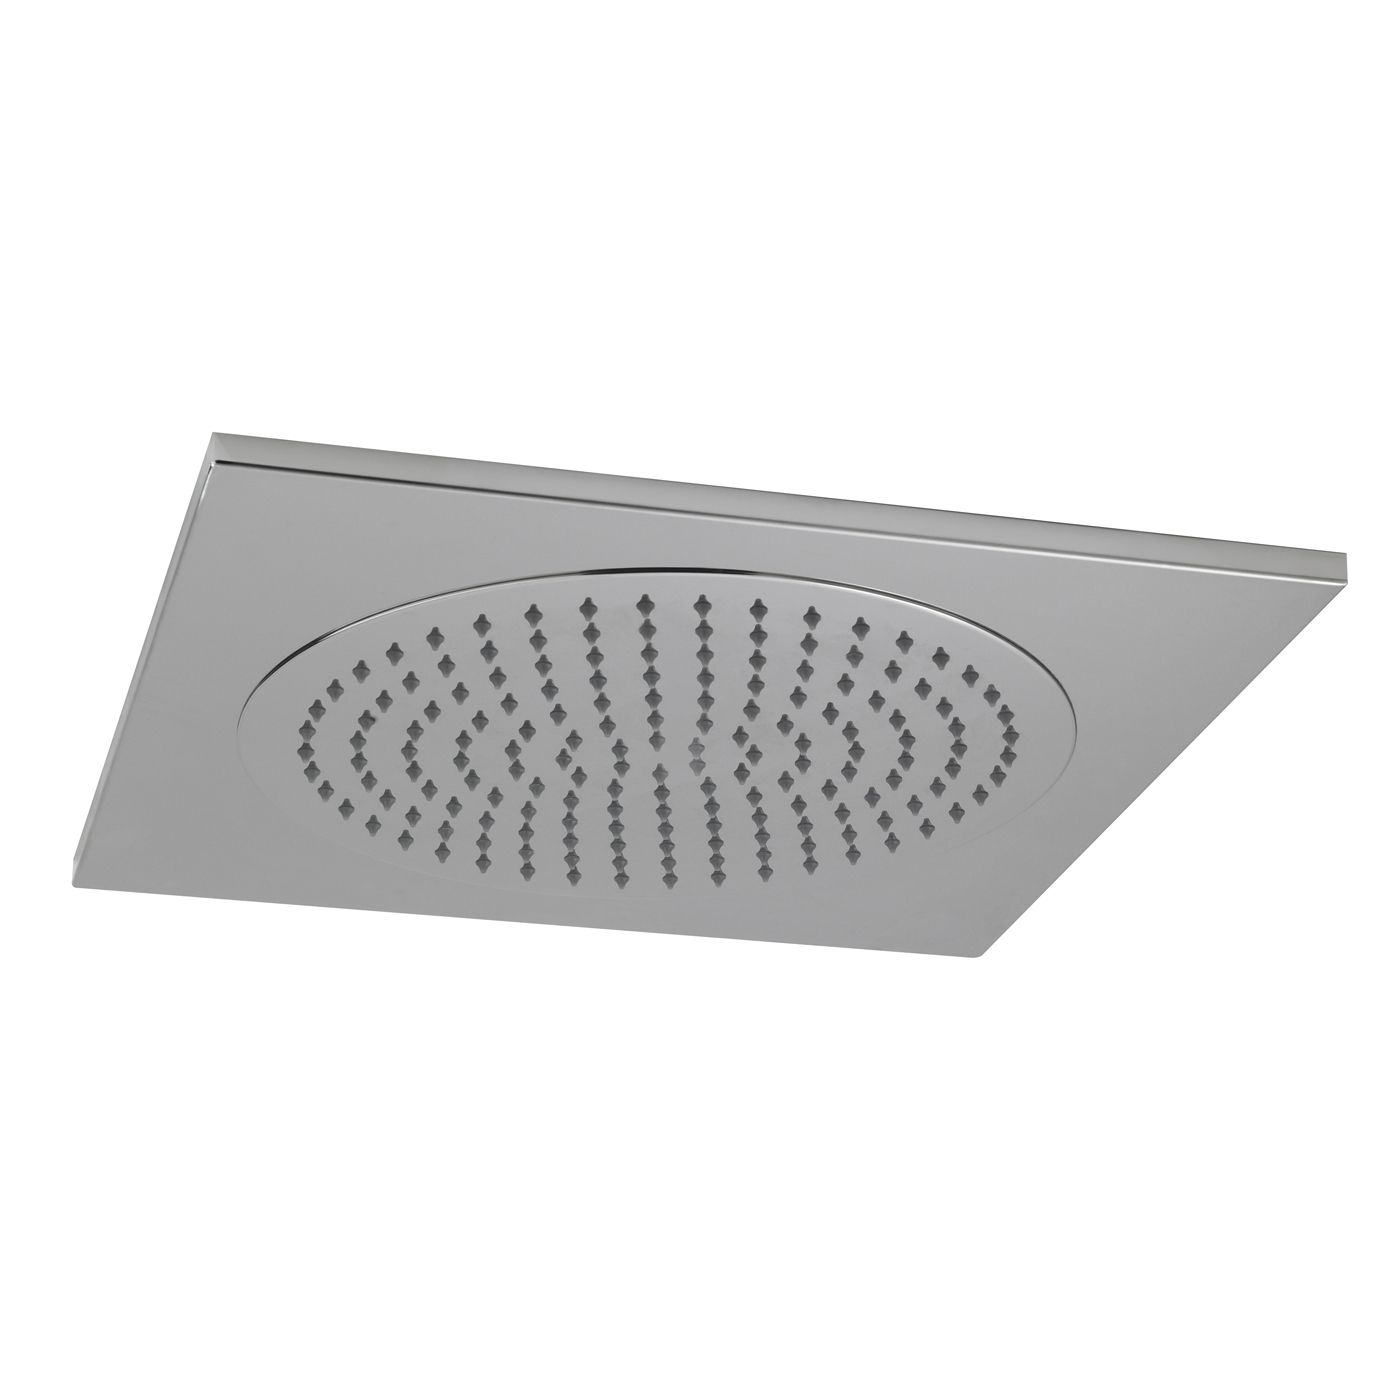 Ceiling Tile Shower Head 20""